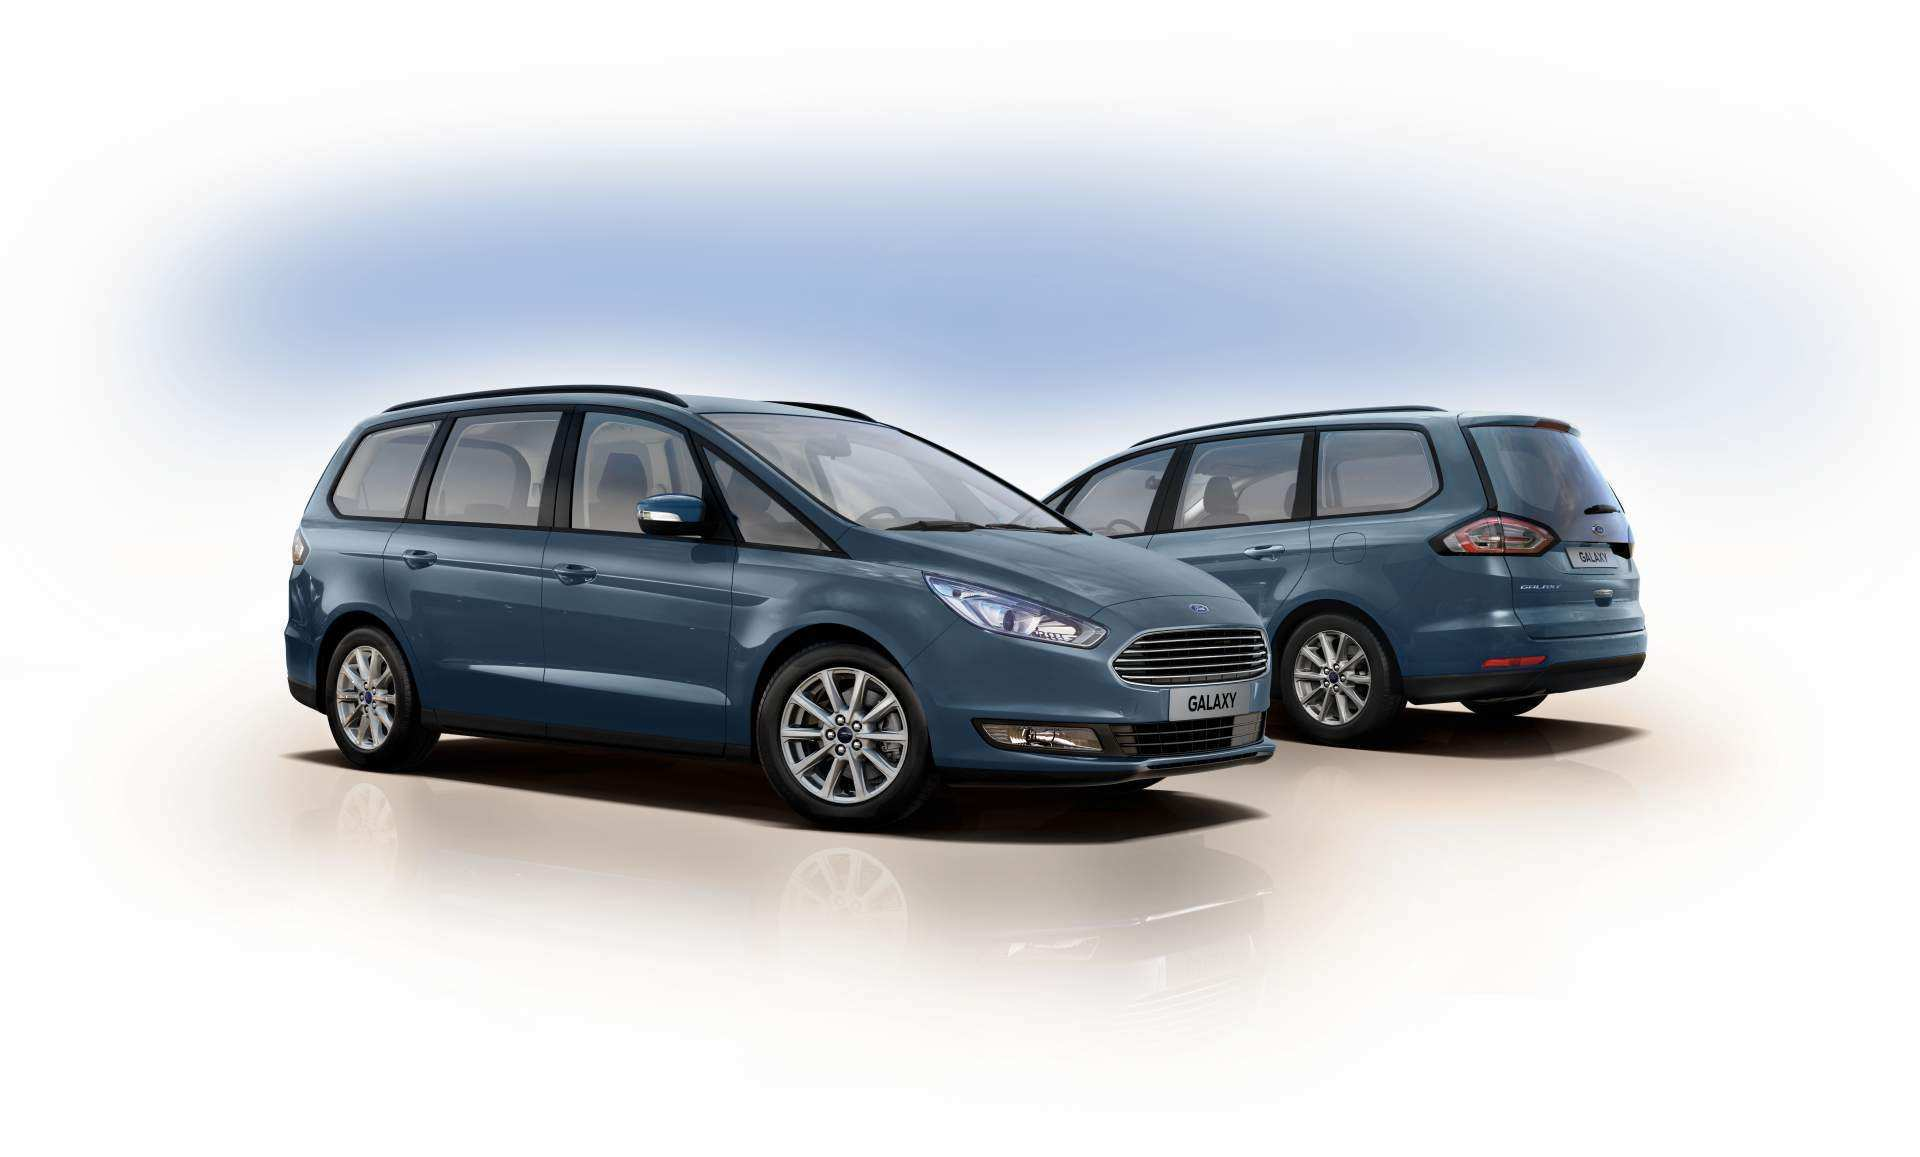 68 The Best 2019 Ford Galaxy Performance And New Engine